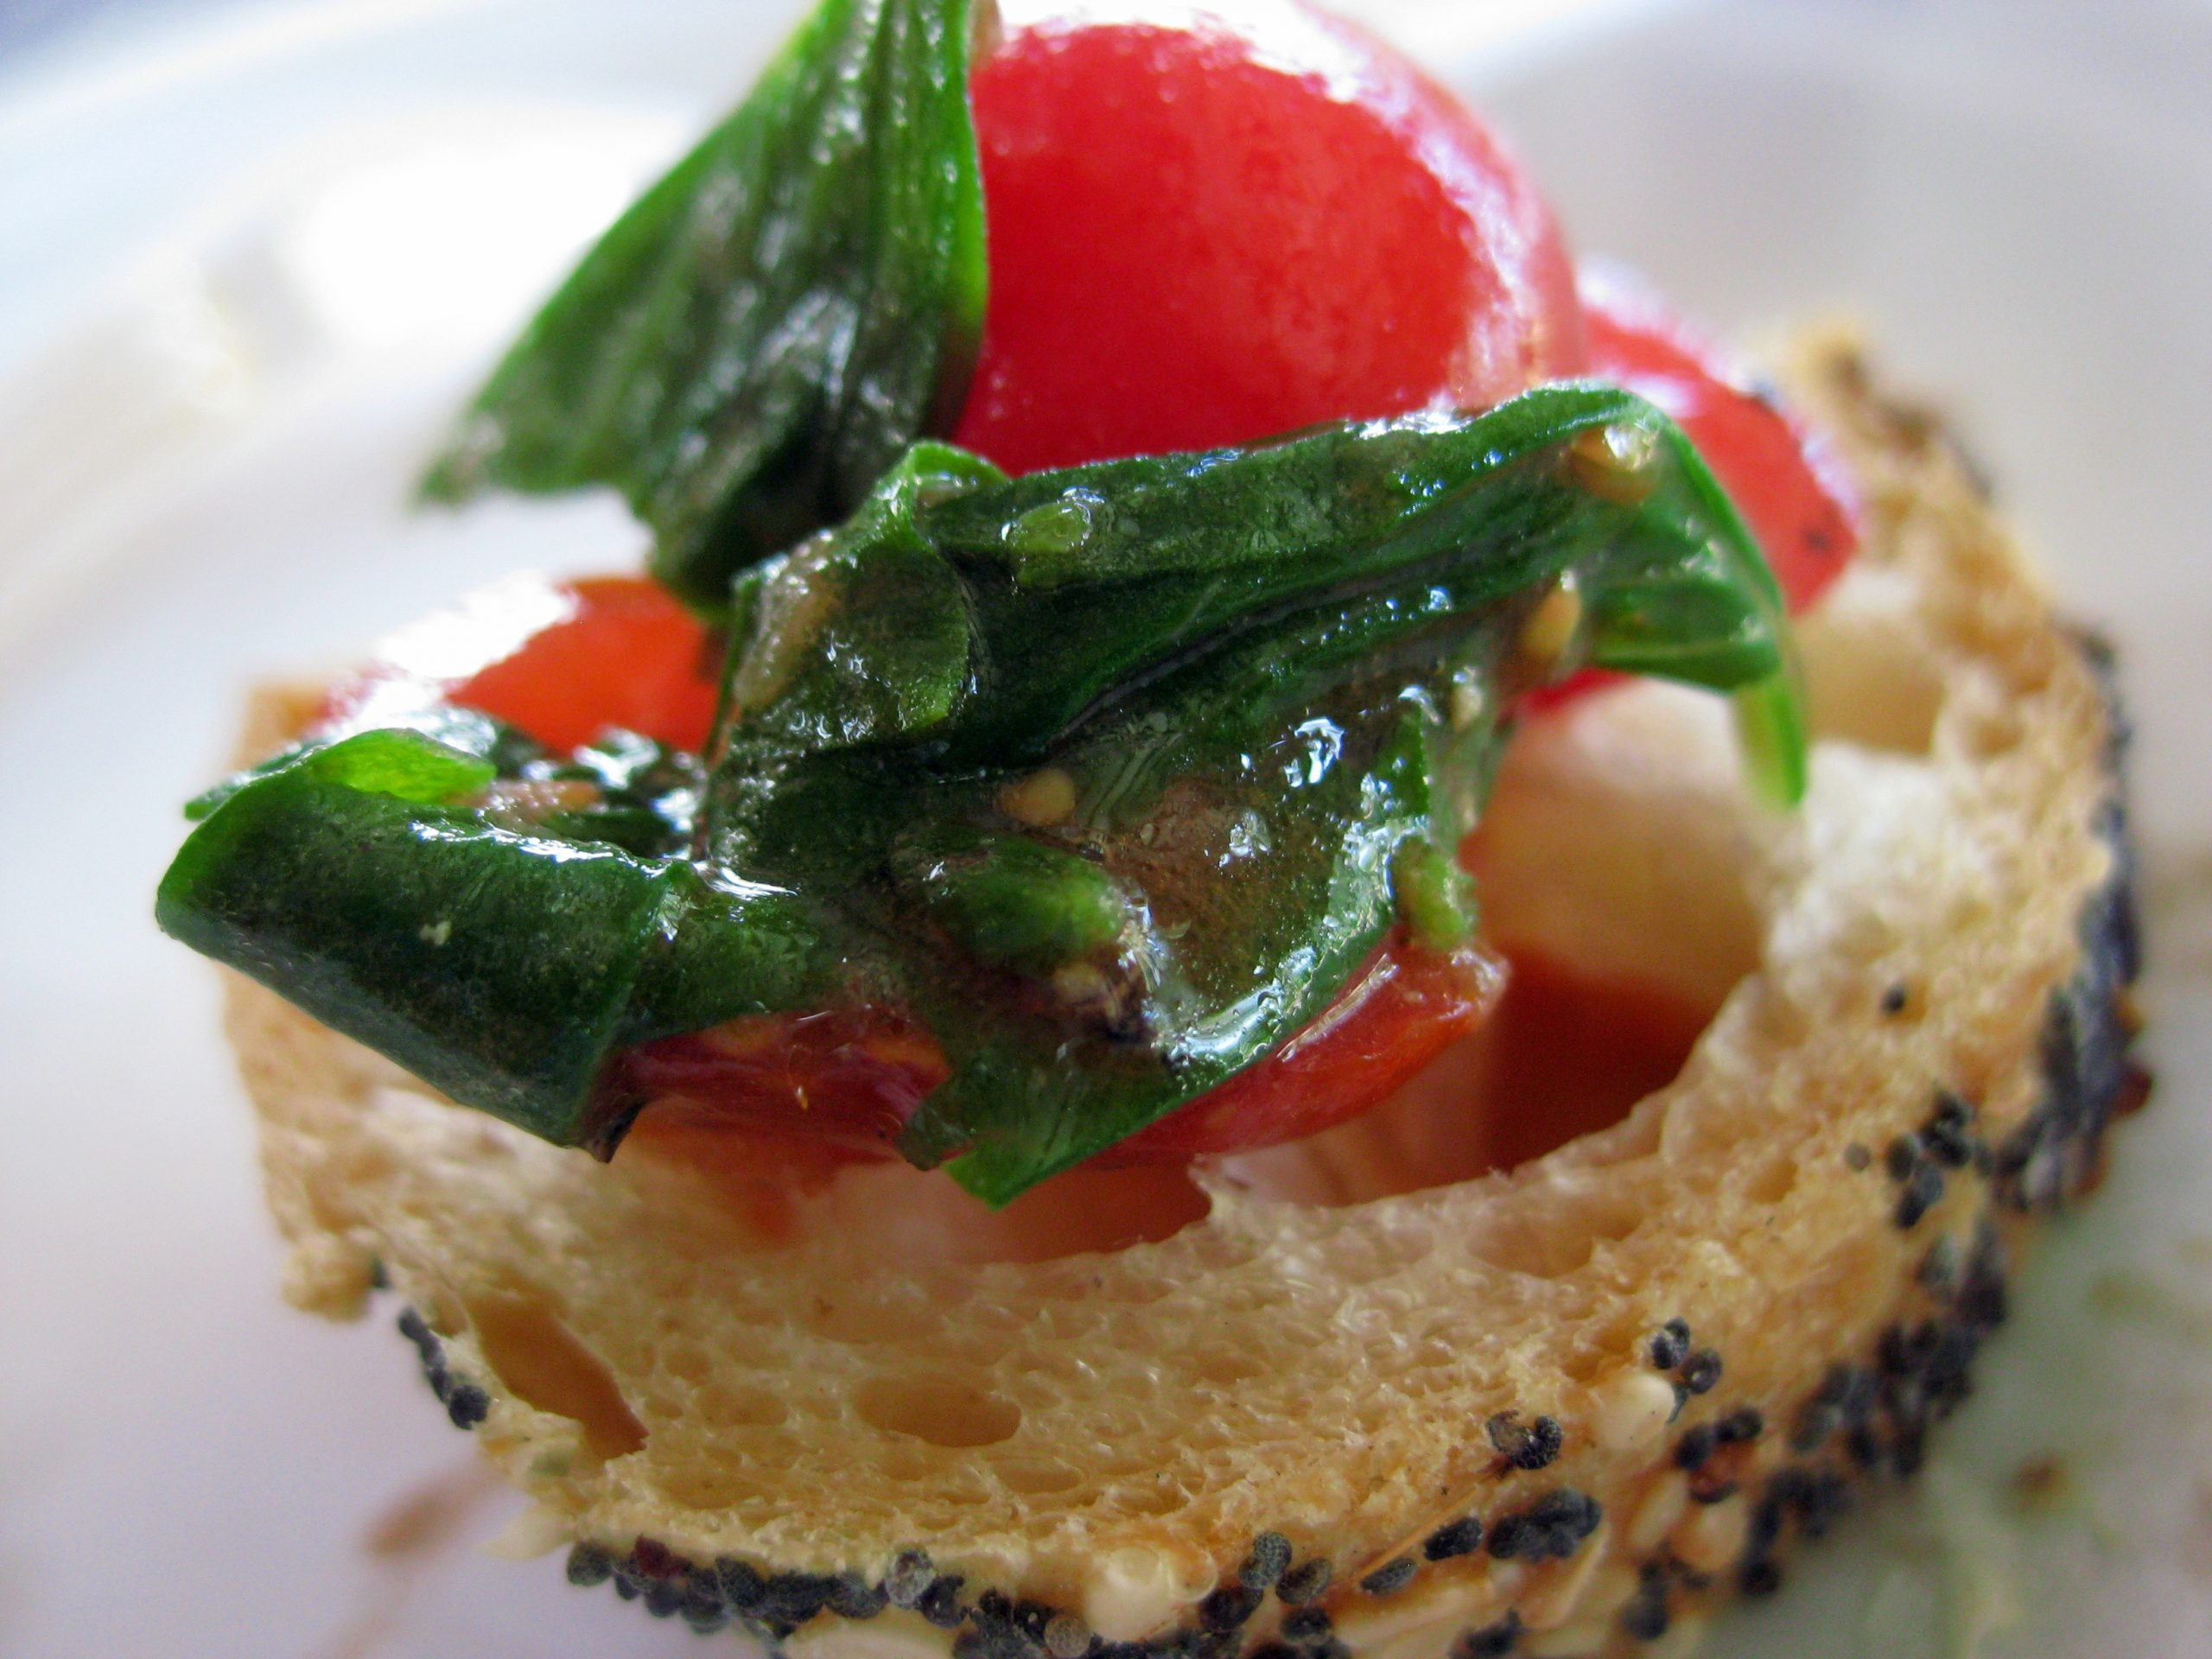 A light and fresh version of bruschetta. Photo by Megan O'Kain Lotay.